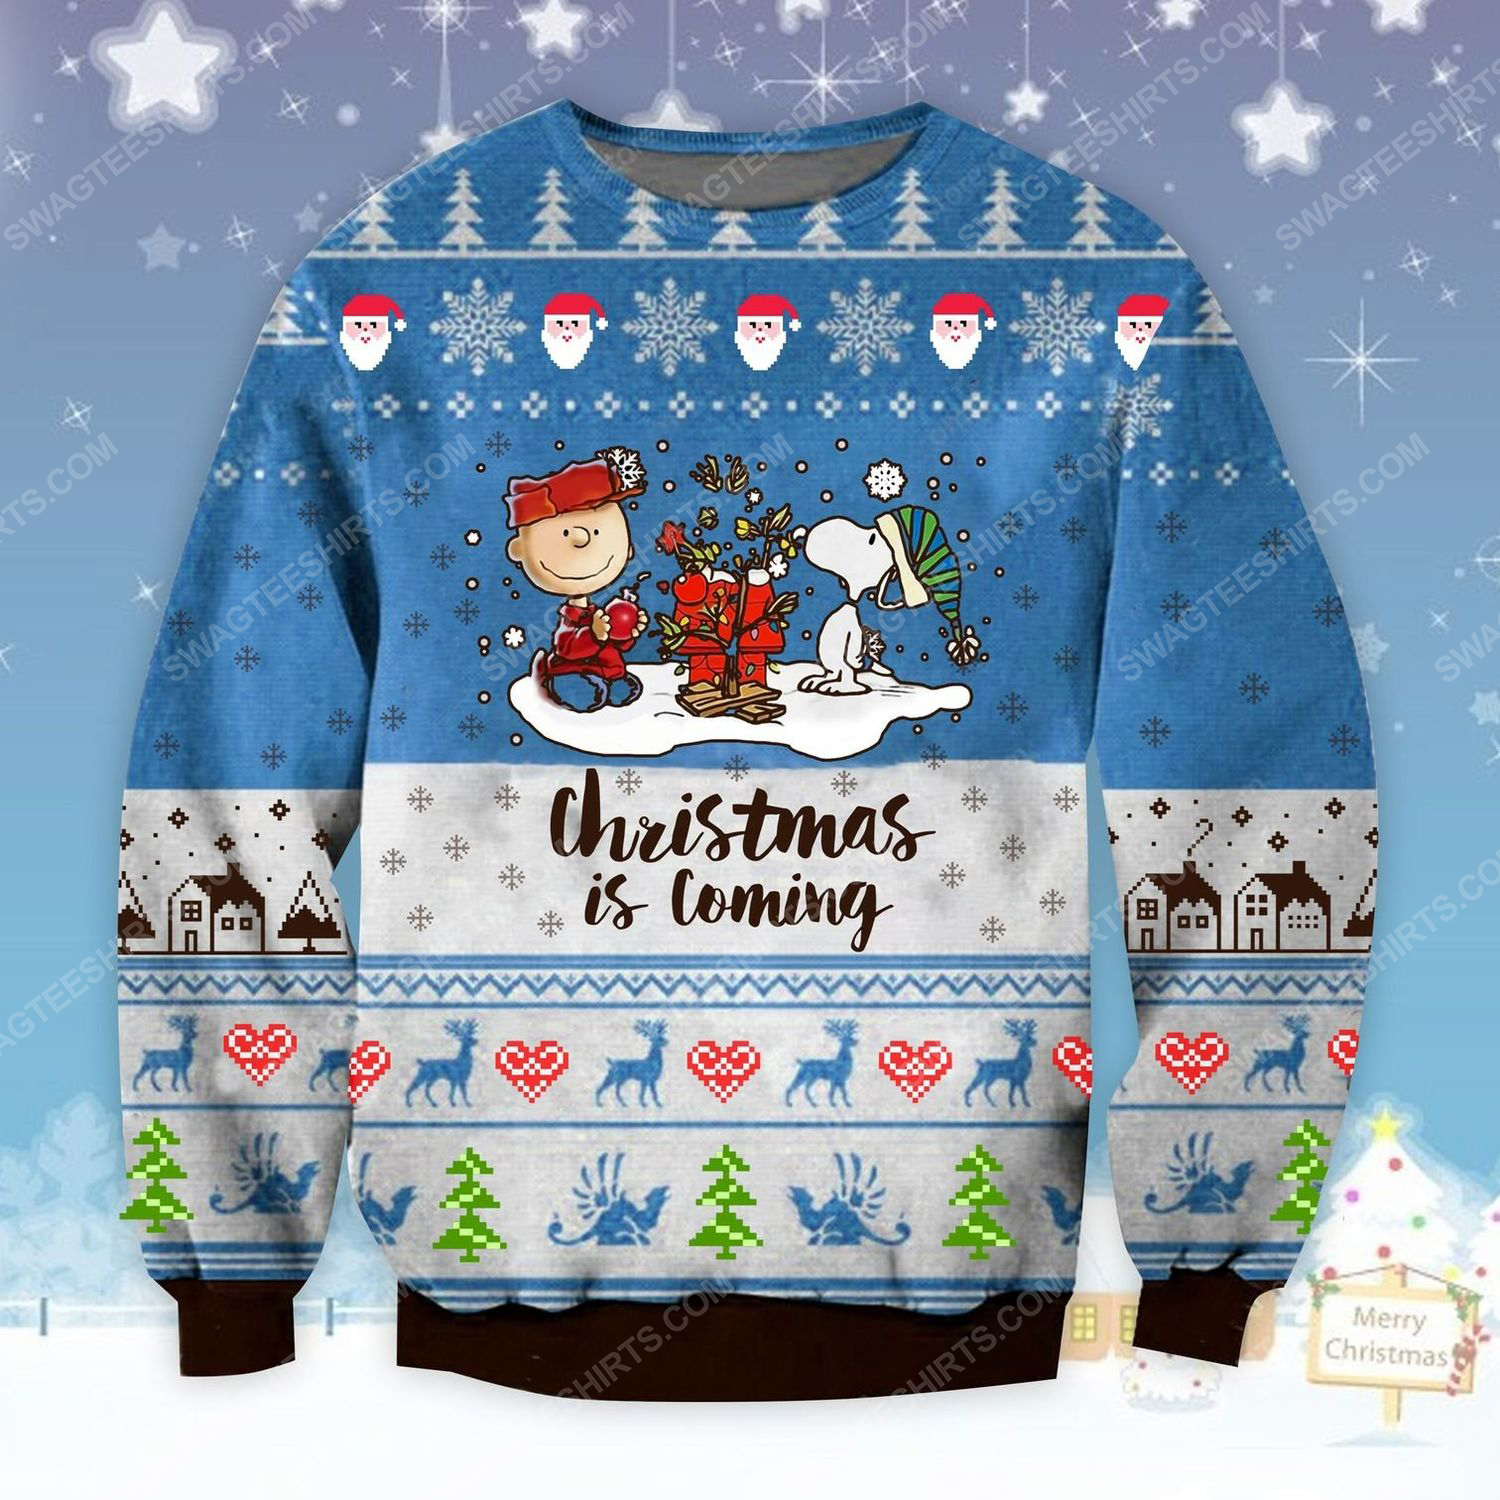 Charlie brown and snoopy christmas is coming ugly christmas sweater - Copy (2)